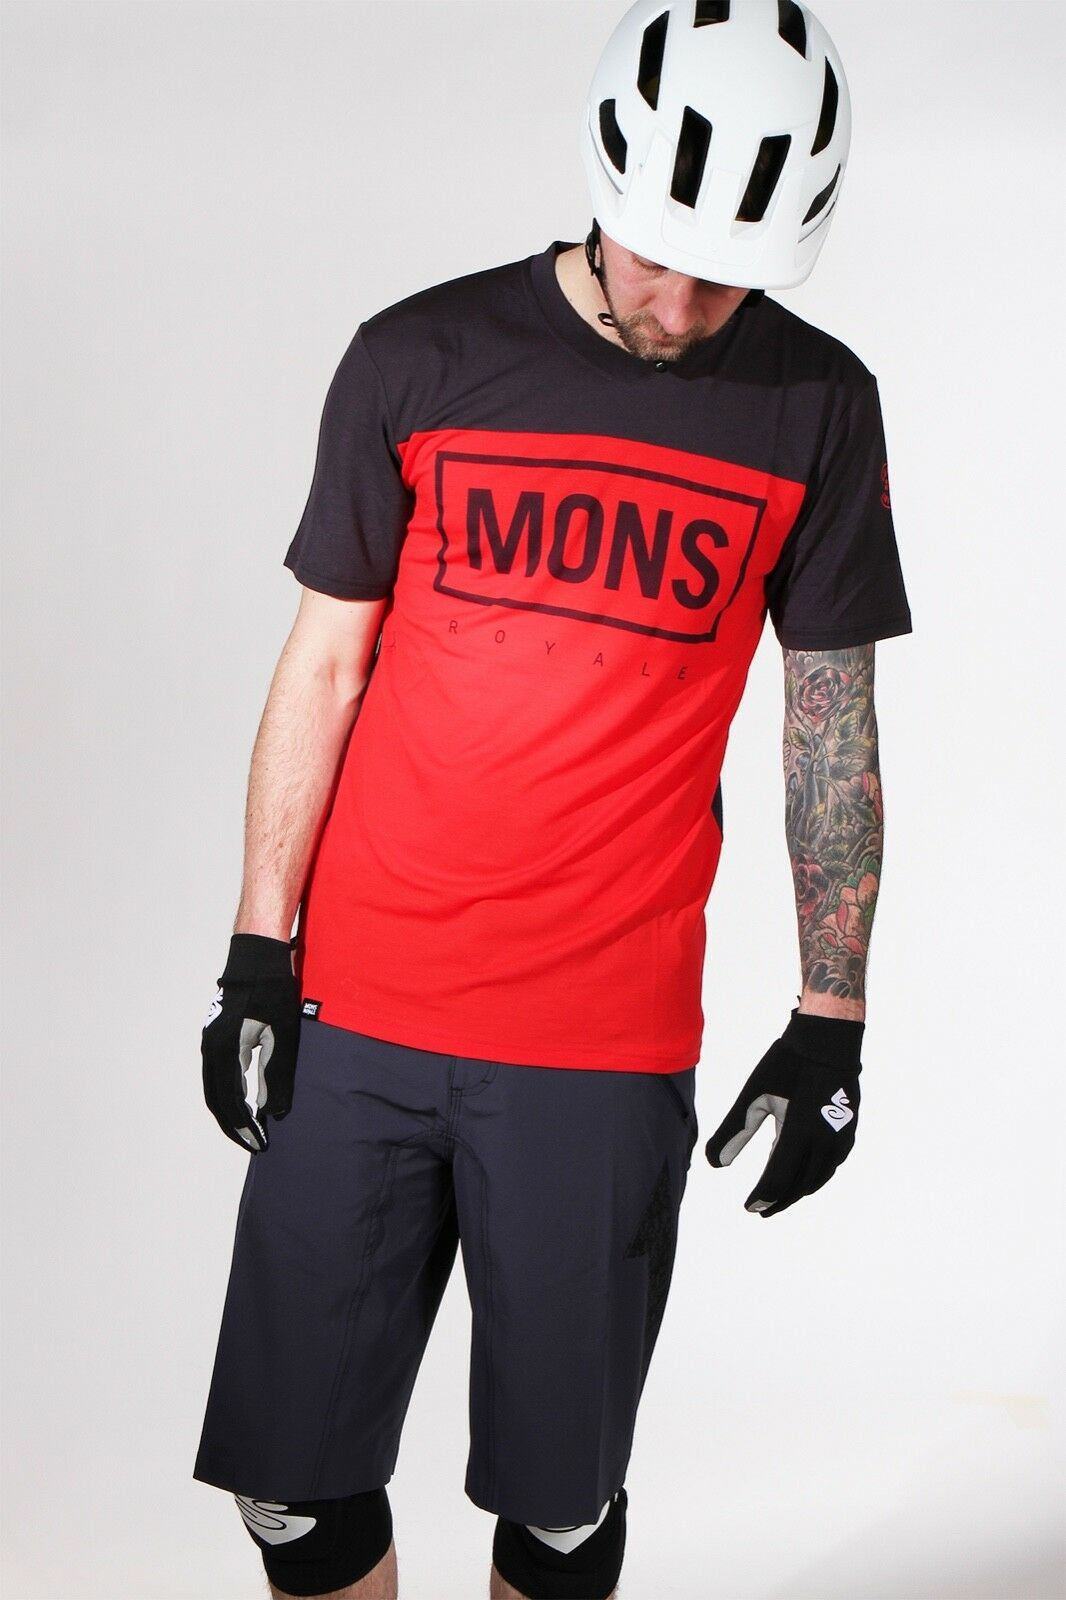 Mons Royale Redwood VT Riding Tee Bright Red 15% OFF